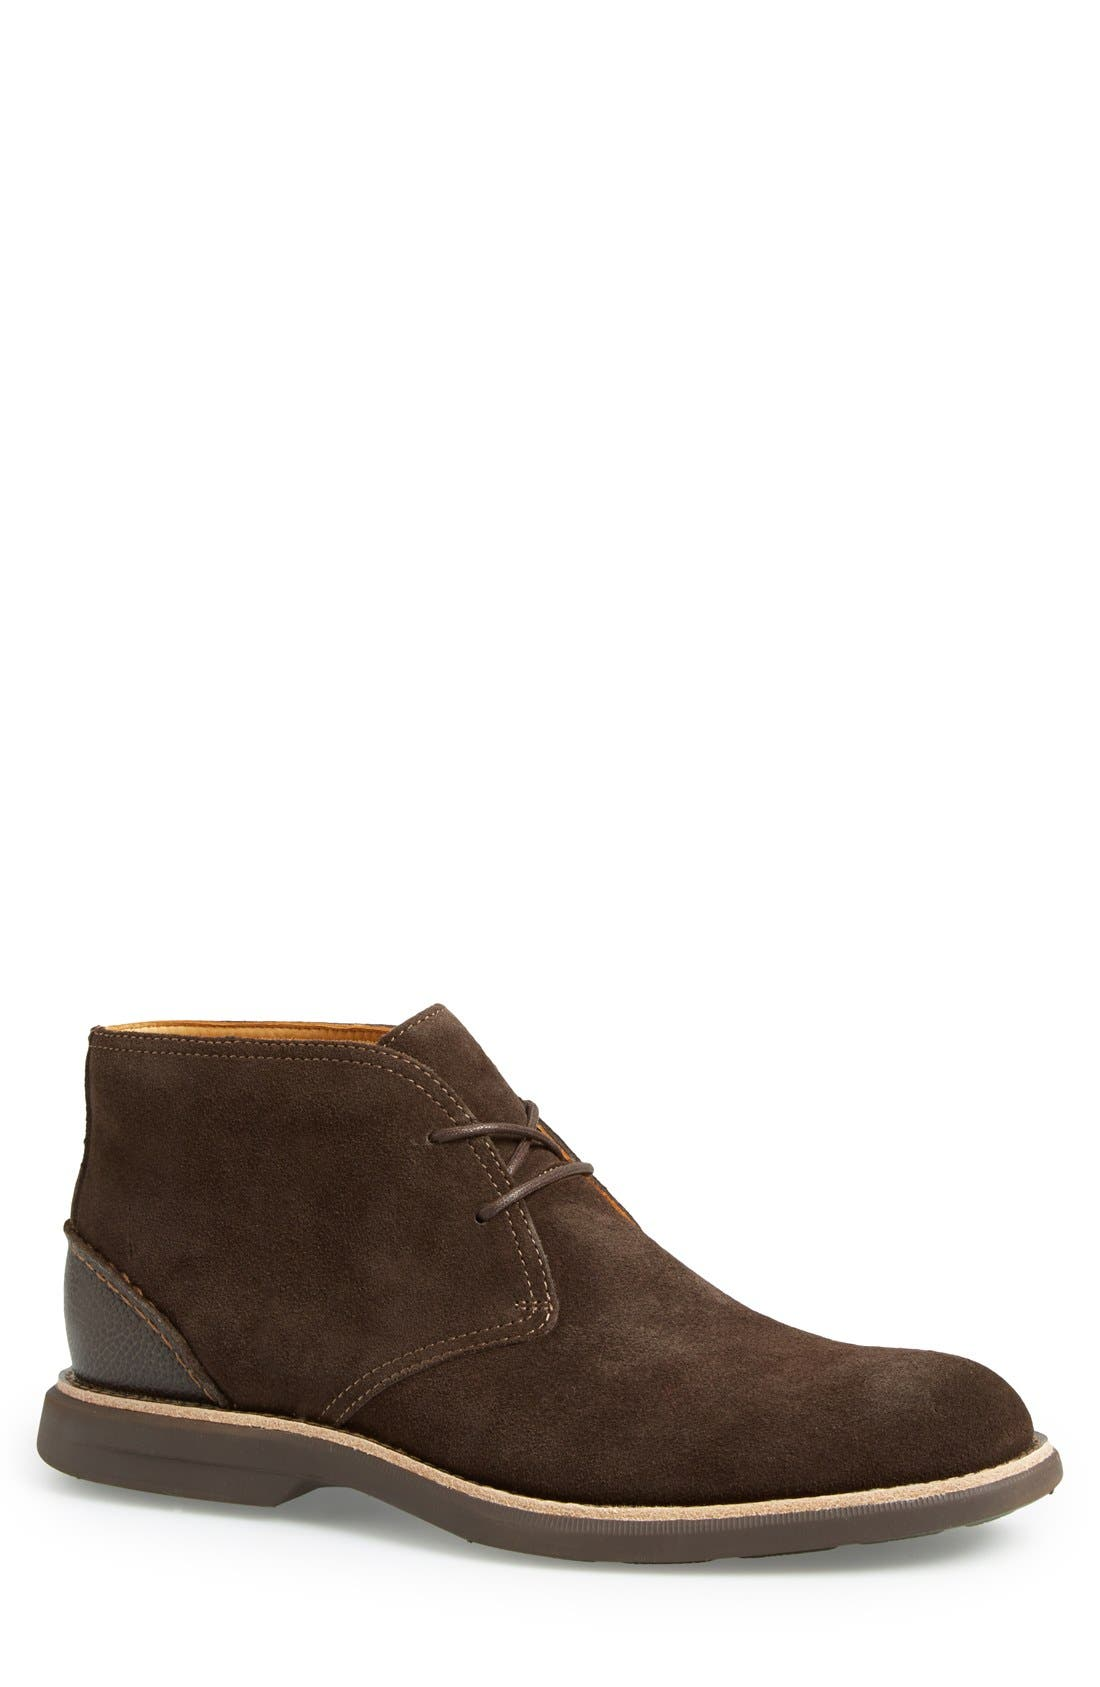 Alternate Image 1 Selected - Sperry 'Gold Cup - Bellingham' Chukka Boot